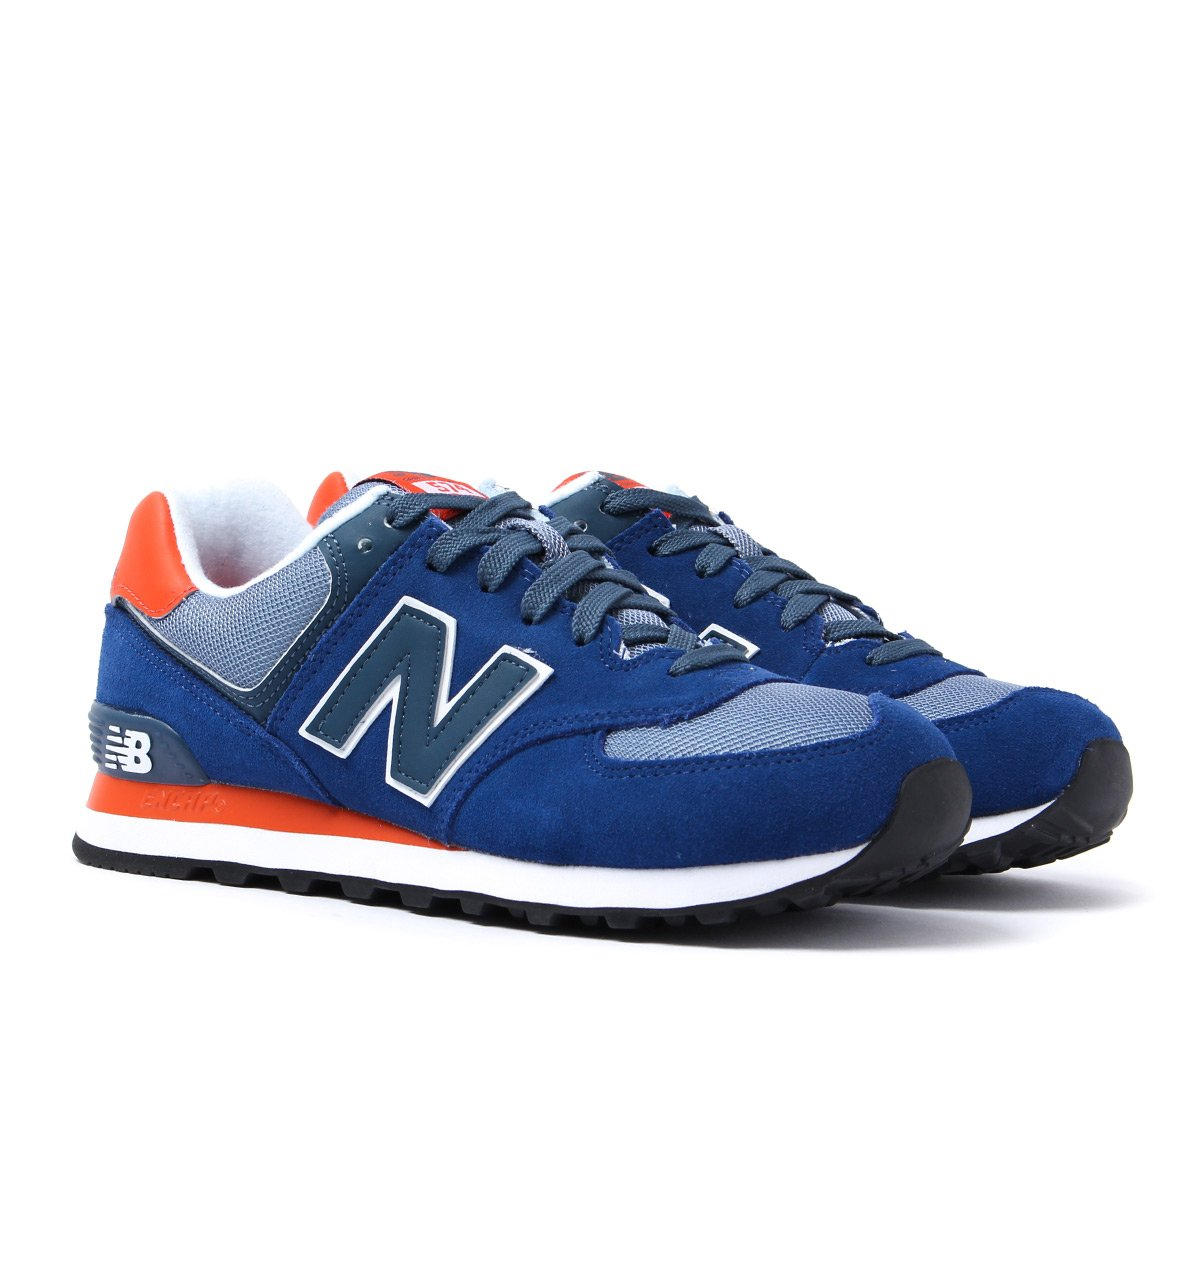 newest 68a35 692e2 New Balance 574 Royal Blue & Orange Suede Trainers-UK 7 ...